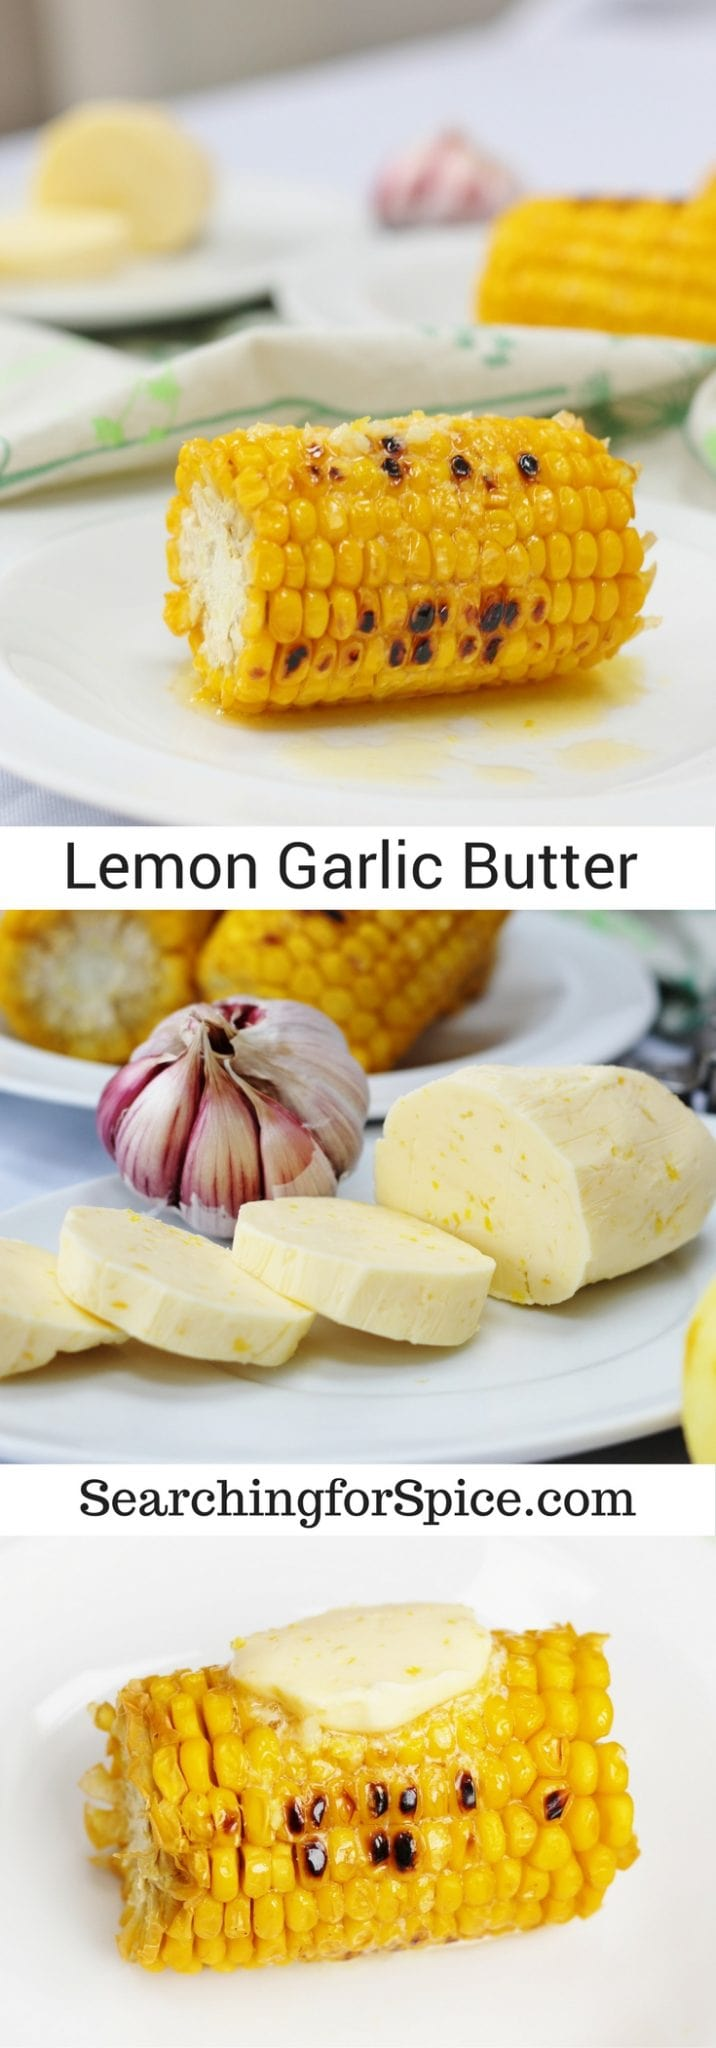 Recipe for zesty lemon garlic butter that's perfect on corn on the cob, green vegetables, fish or chicken